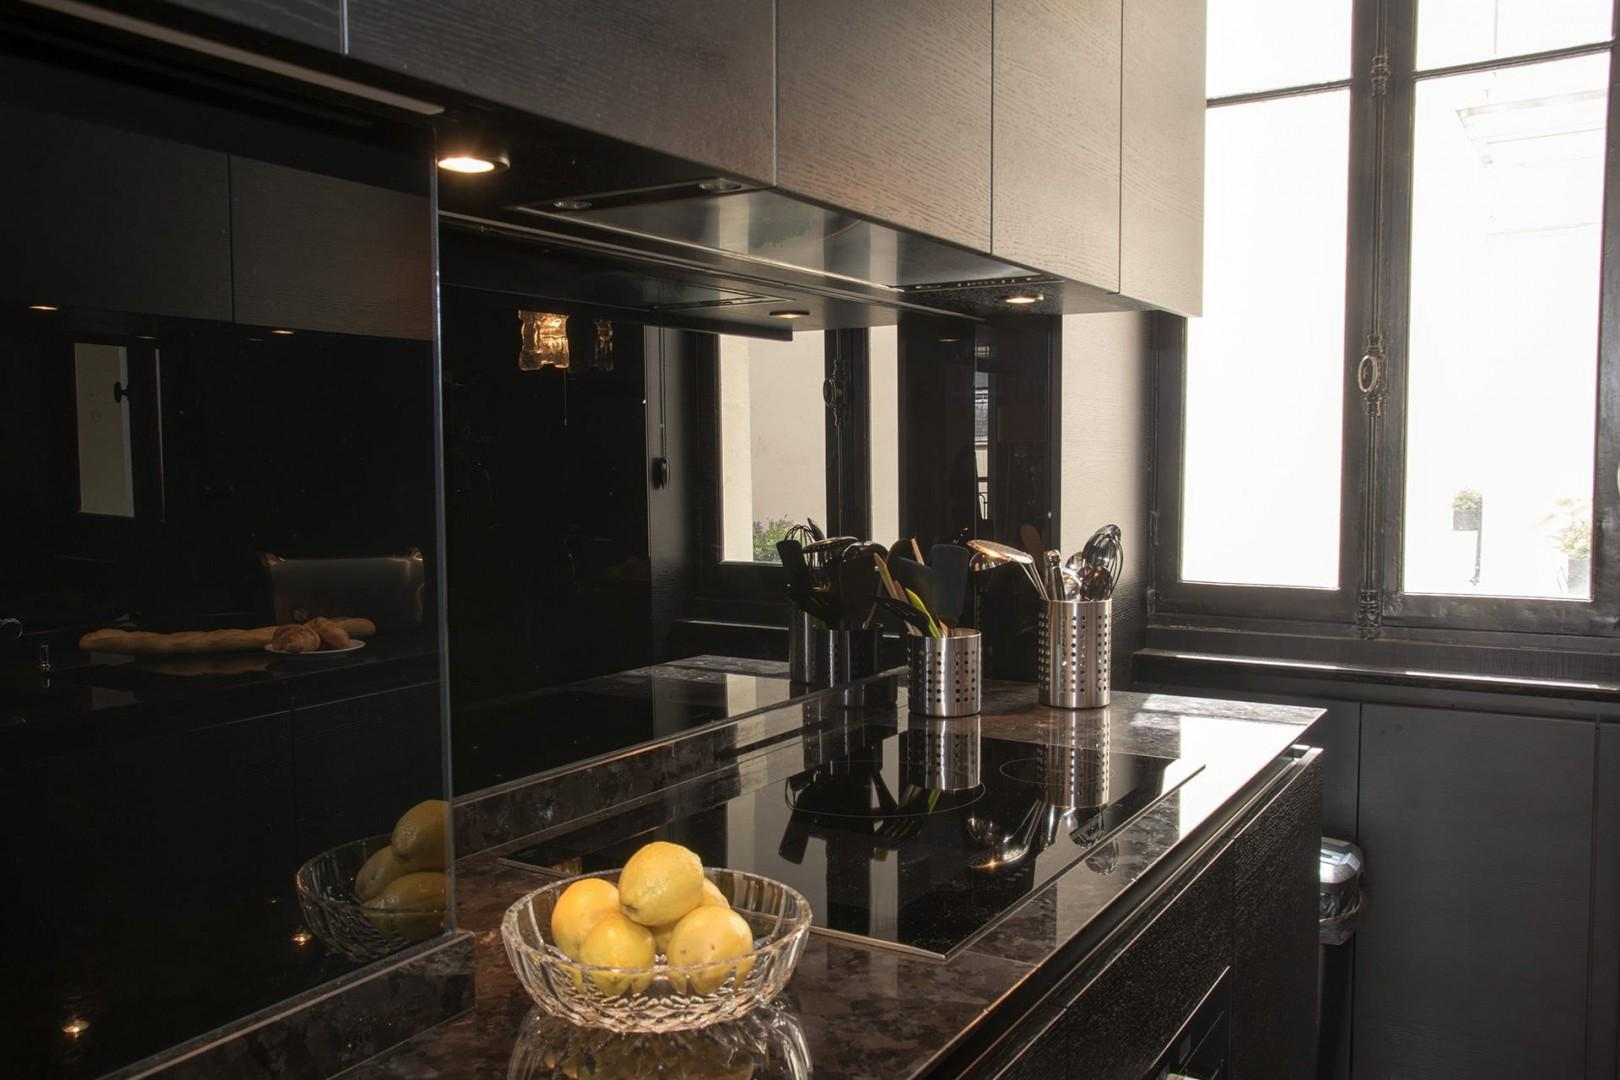 Cook up a storm in this gourmet kitchen!